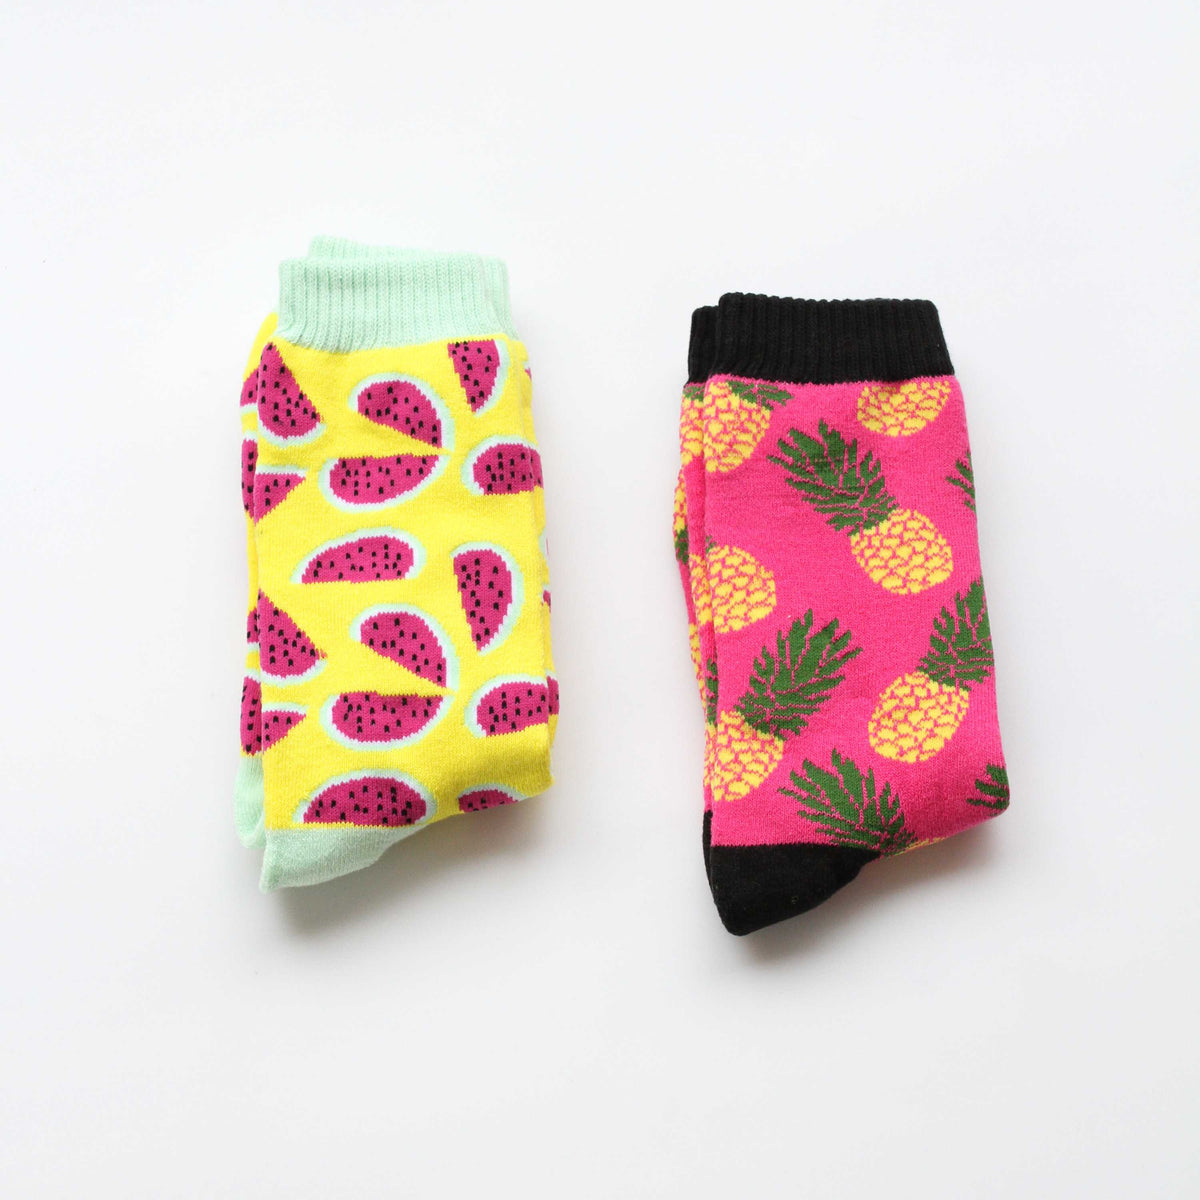 Long Cotton Socks 2 Pairs Set - Fruit - worthtryit.com